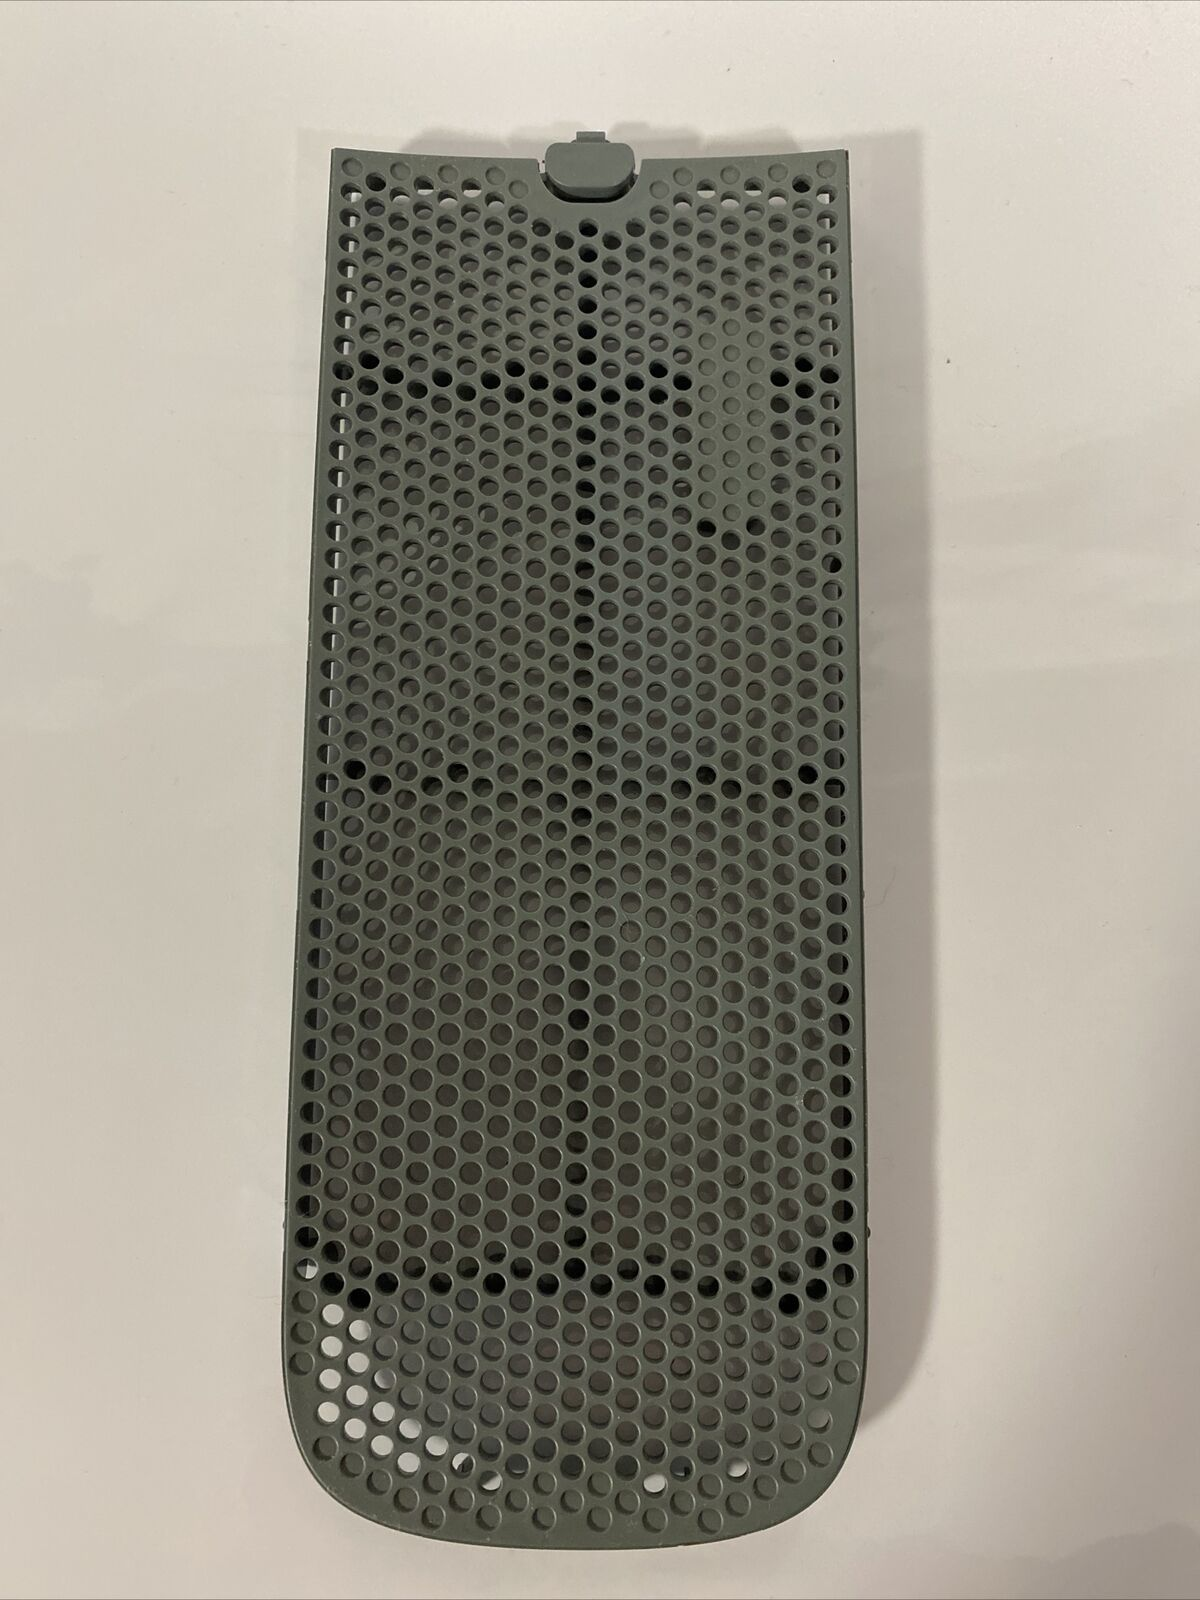 Original Xbox 360 Replacement Hard Drive Grille Cover - Clean Used Condition -